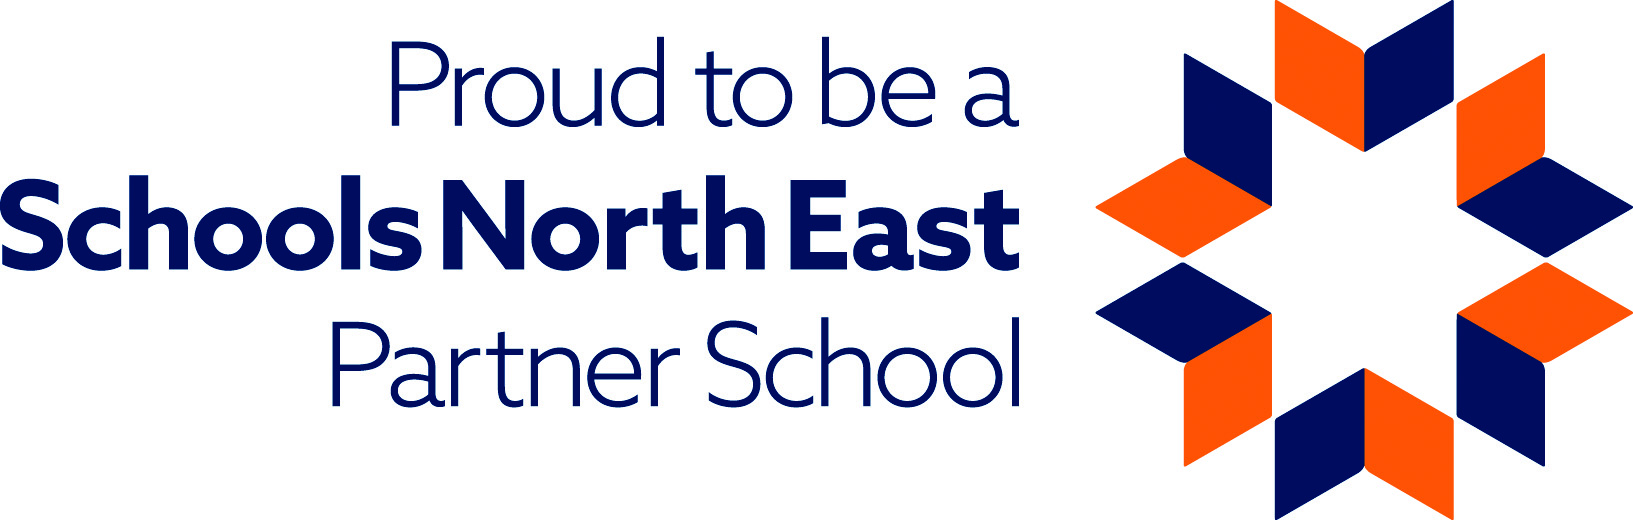 Schools North East Partner school